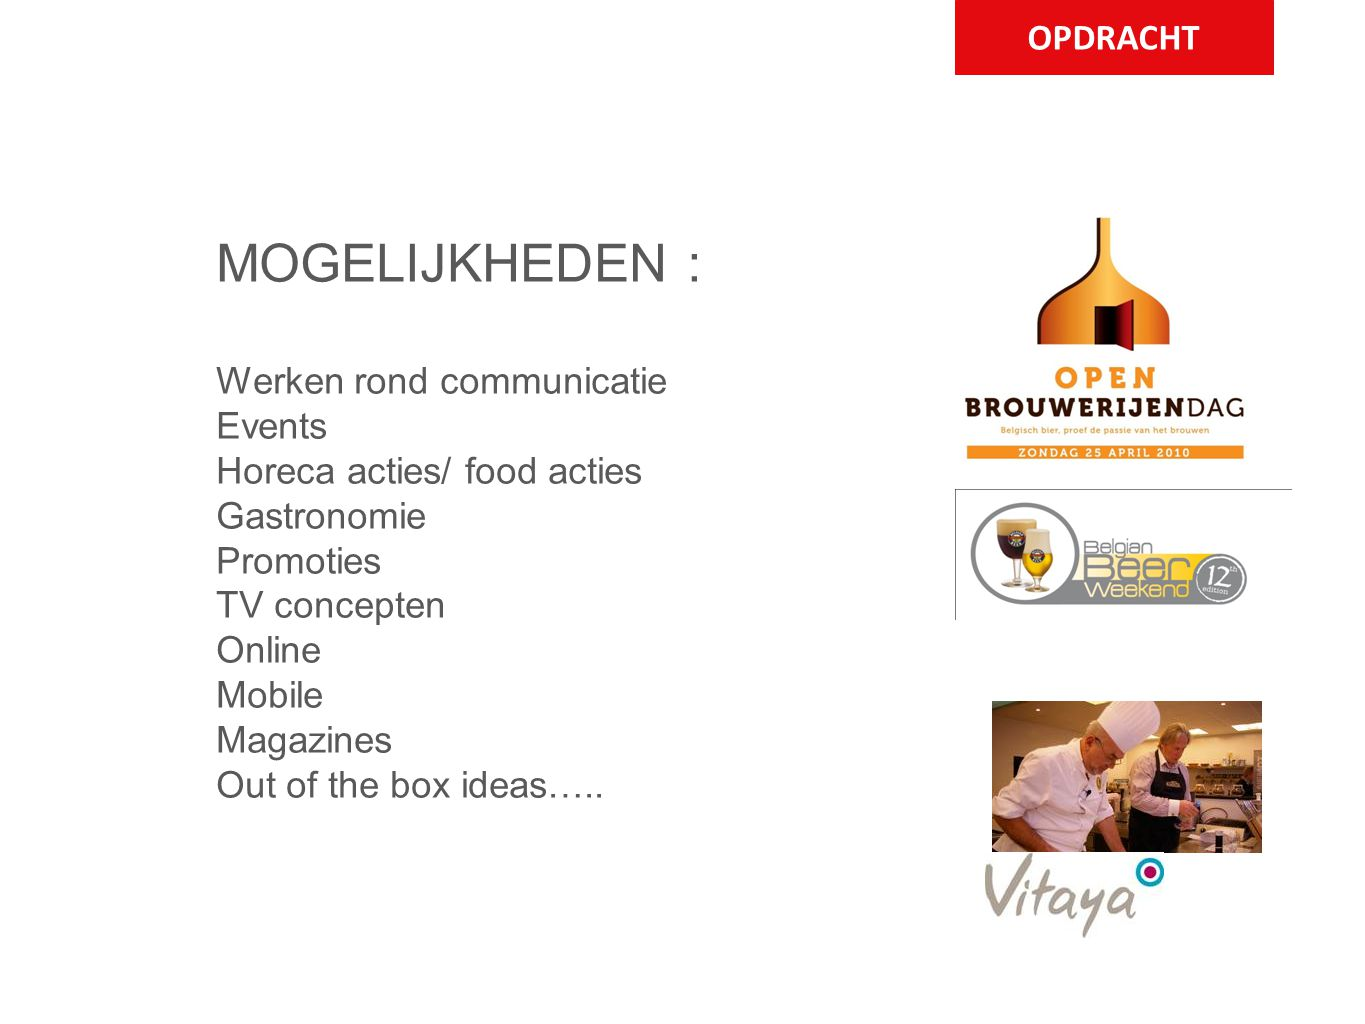 OPDRACHT MOGELIJKHEDEN : Werken rond communicatie Events Horeca acties/ food acties Gastronomie Promoties TV concepten Online Mobile Magazines Out of the box ideas…..